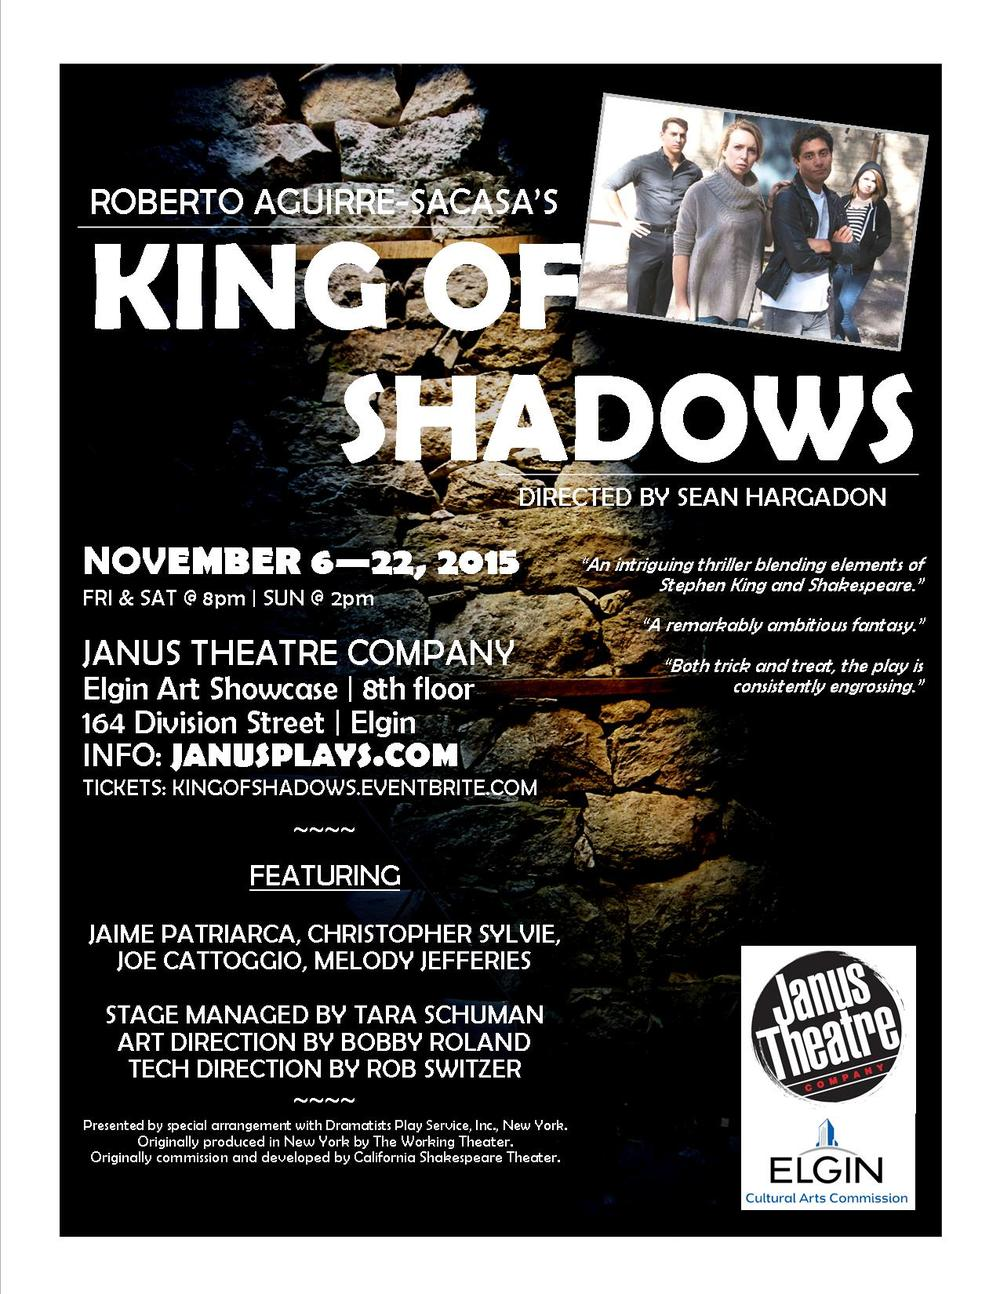 The King of Shadows poster, designed by the Janus Theatre Company.